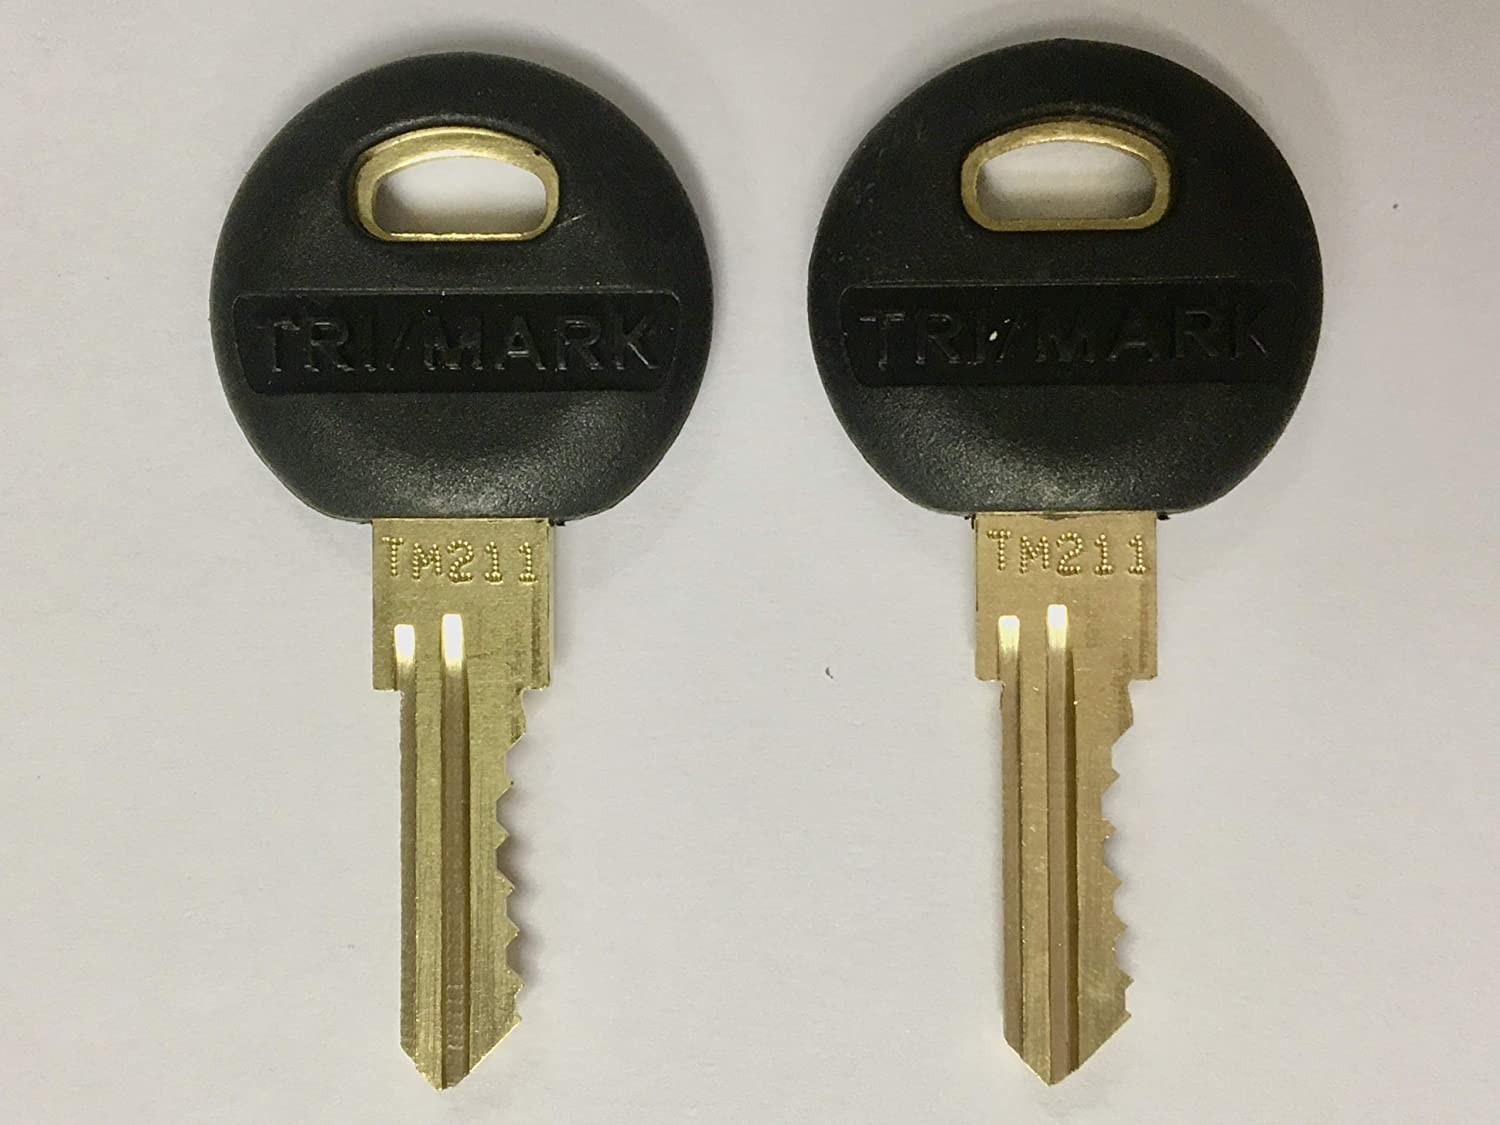 Trimark TM500 Key for 60-400 baggage compartment doors RV Motorhome